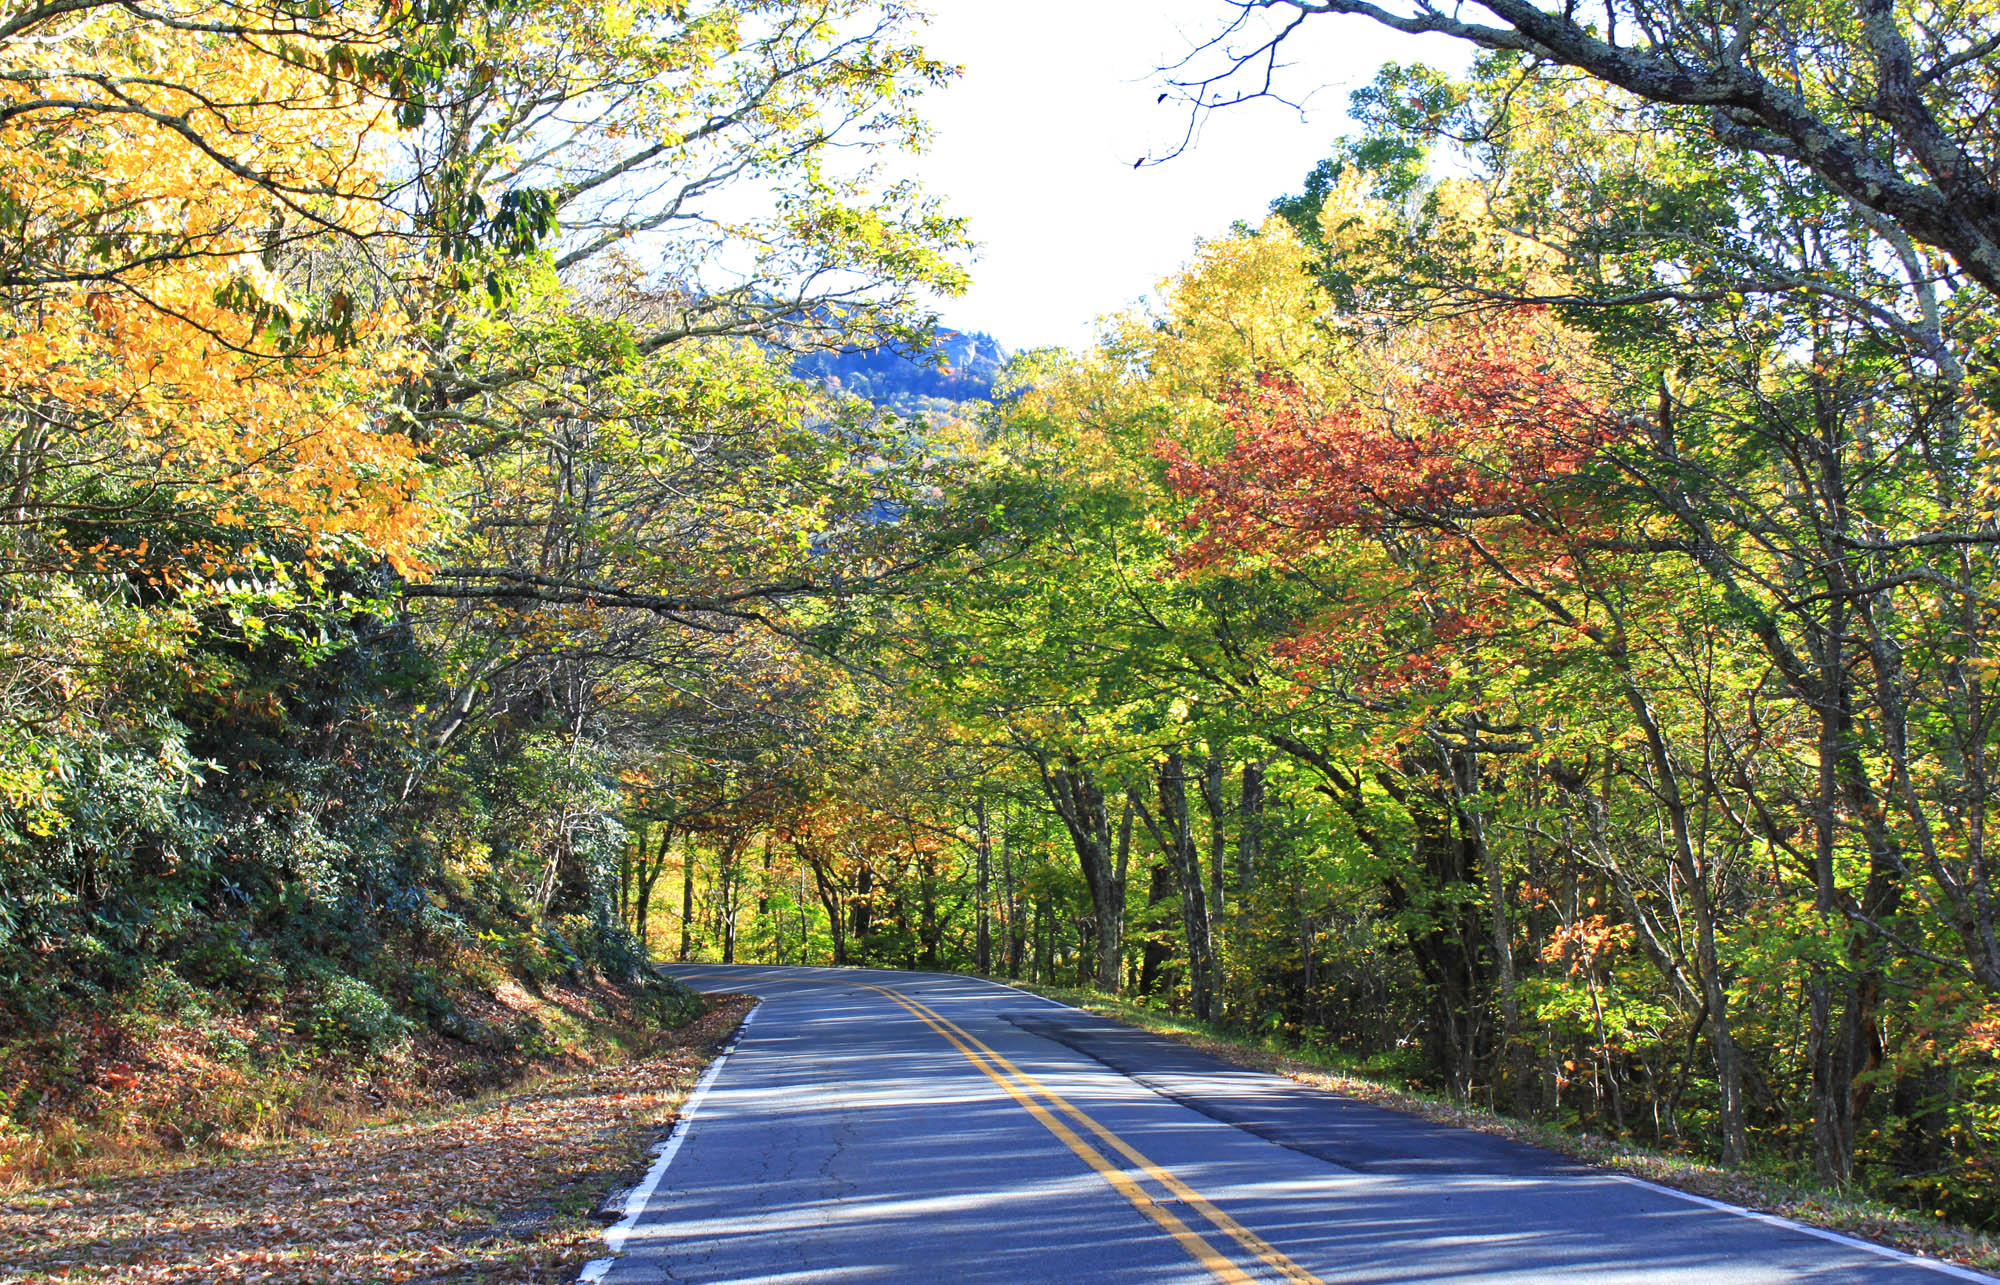 Highway 221 in Blowing Rock NC with fall foliage